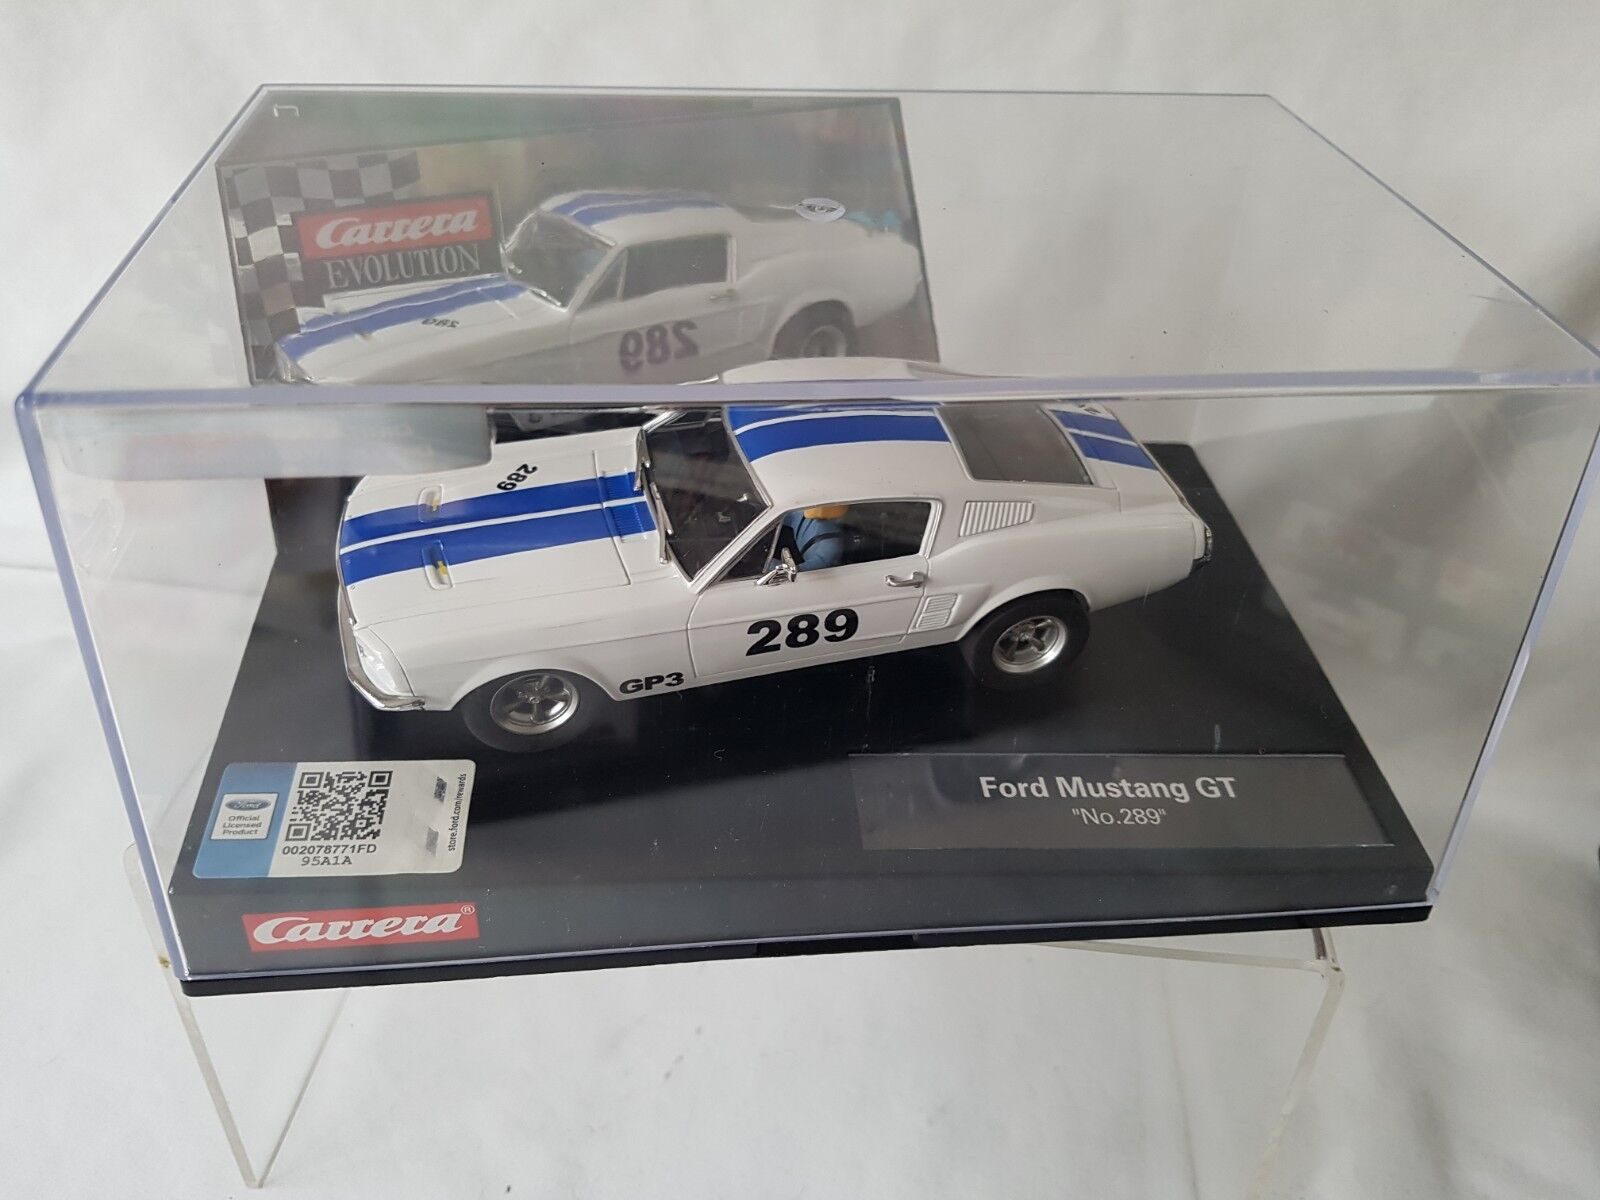 CARRERA EVOLUTION 27450 FORD MUSTANG GT WHITE blueE STRIPE NEW BOXED